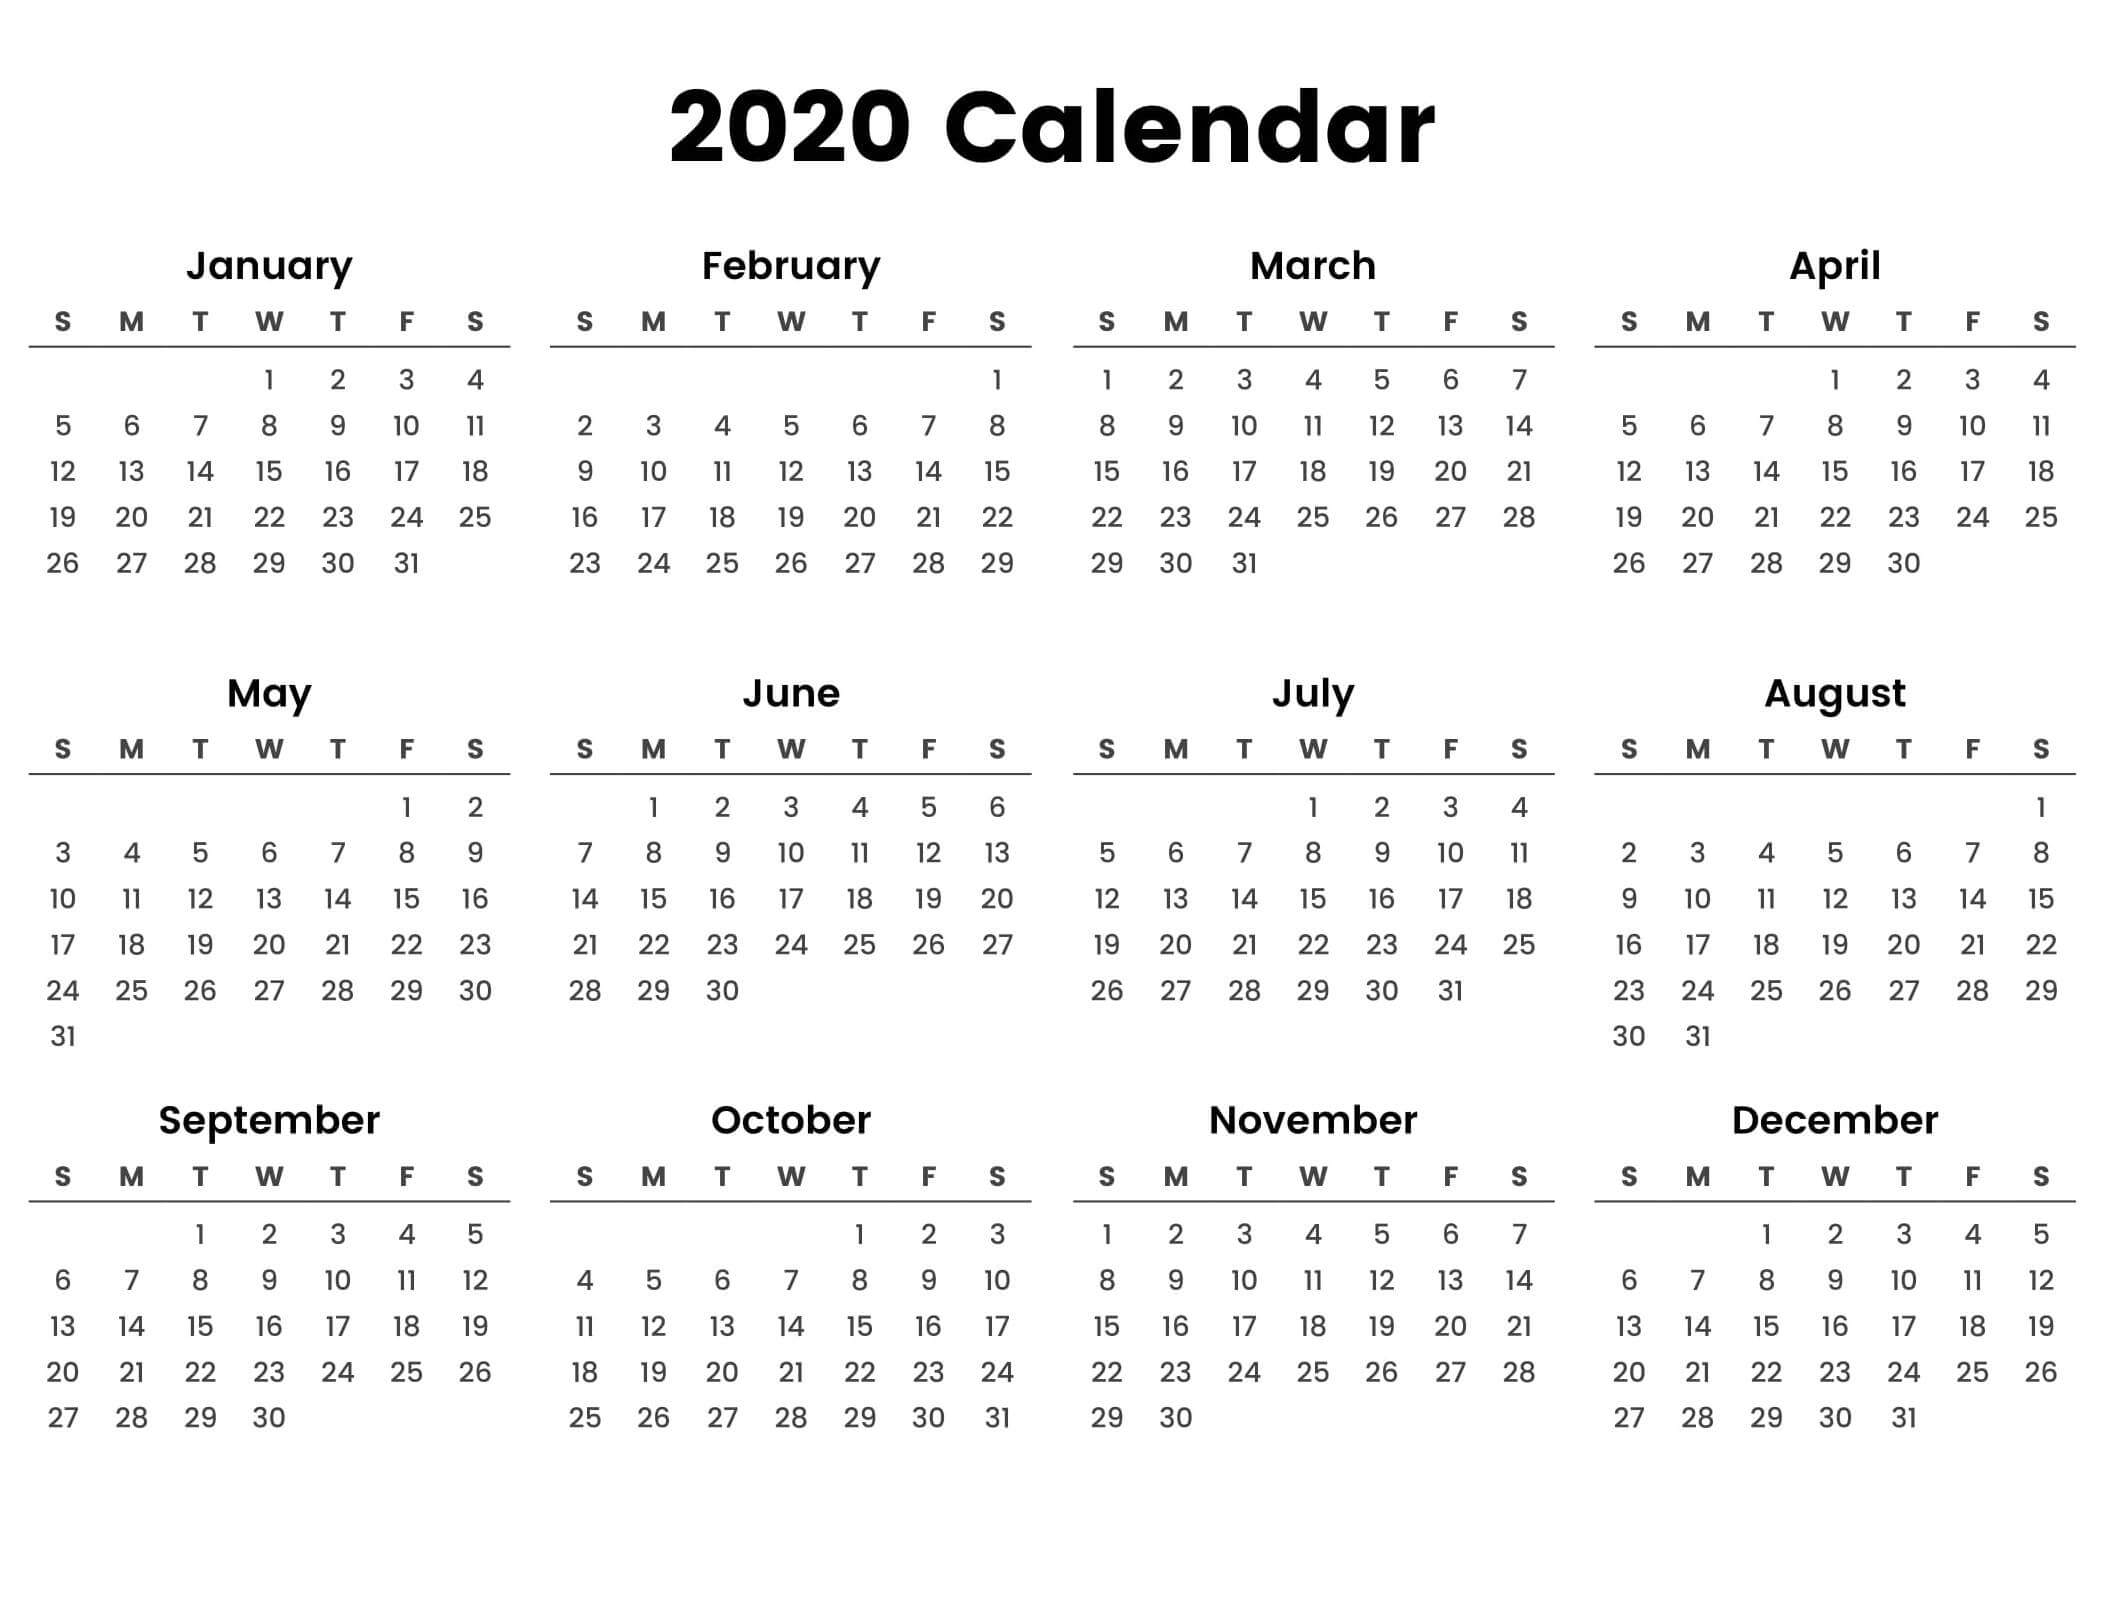 Large Yearly Calendar 2020 With Notes Pdf - Set Your Plan regarding Free Word 2020 Calendar Year At A Glance